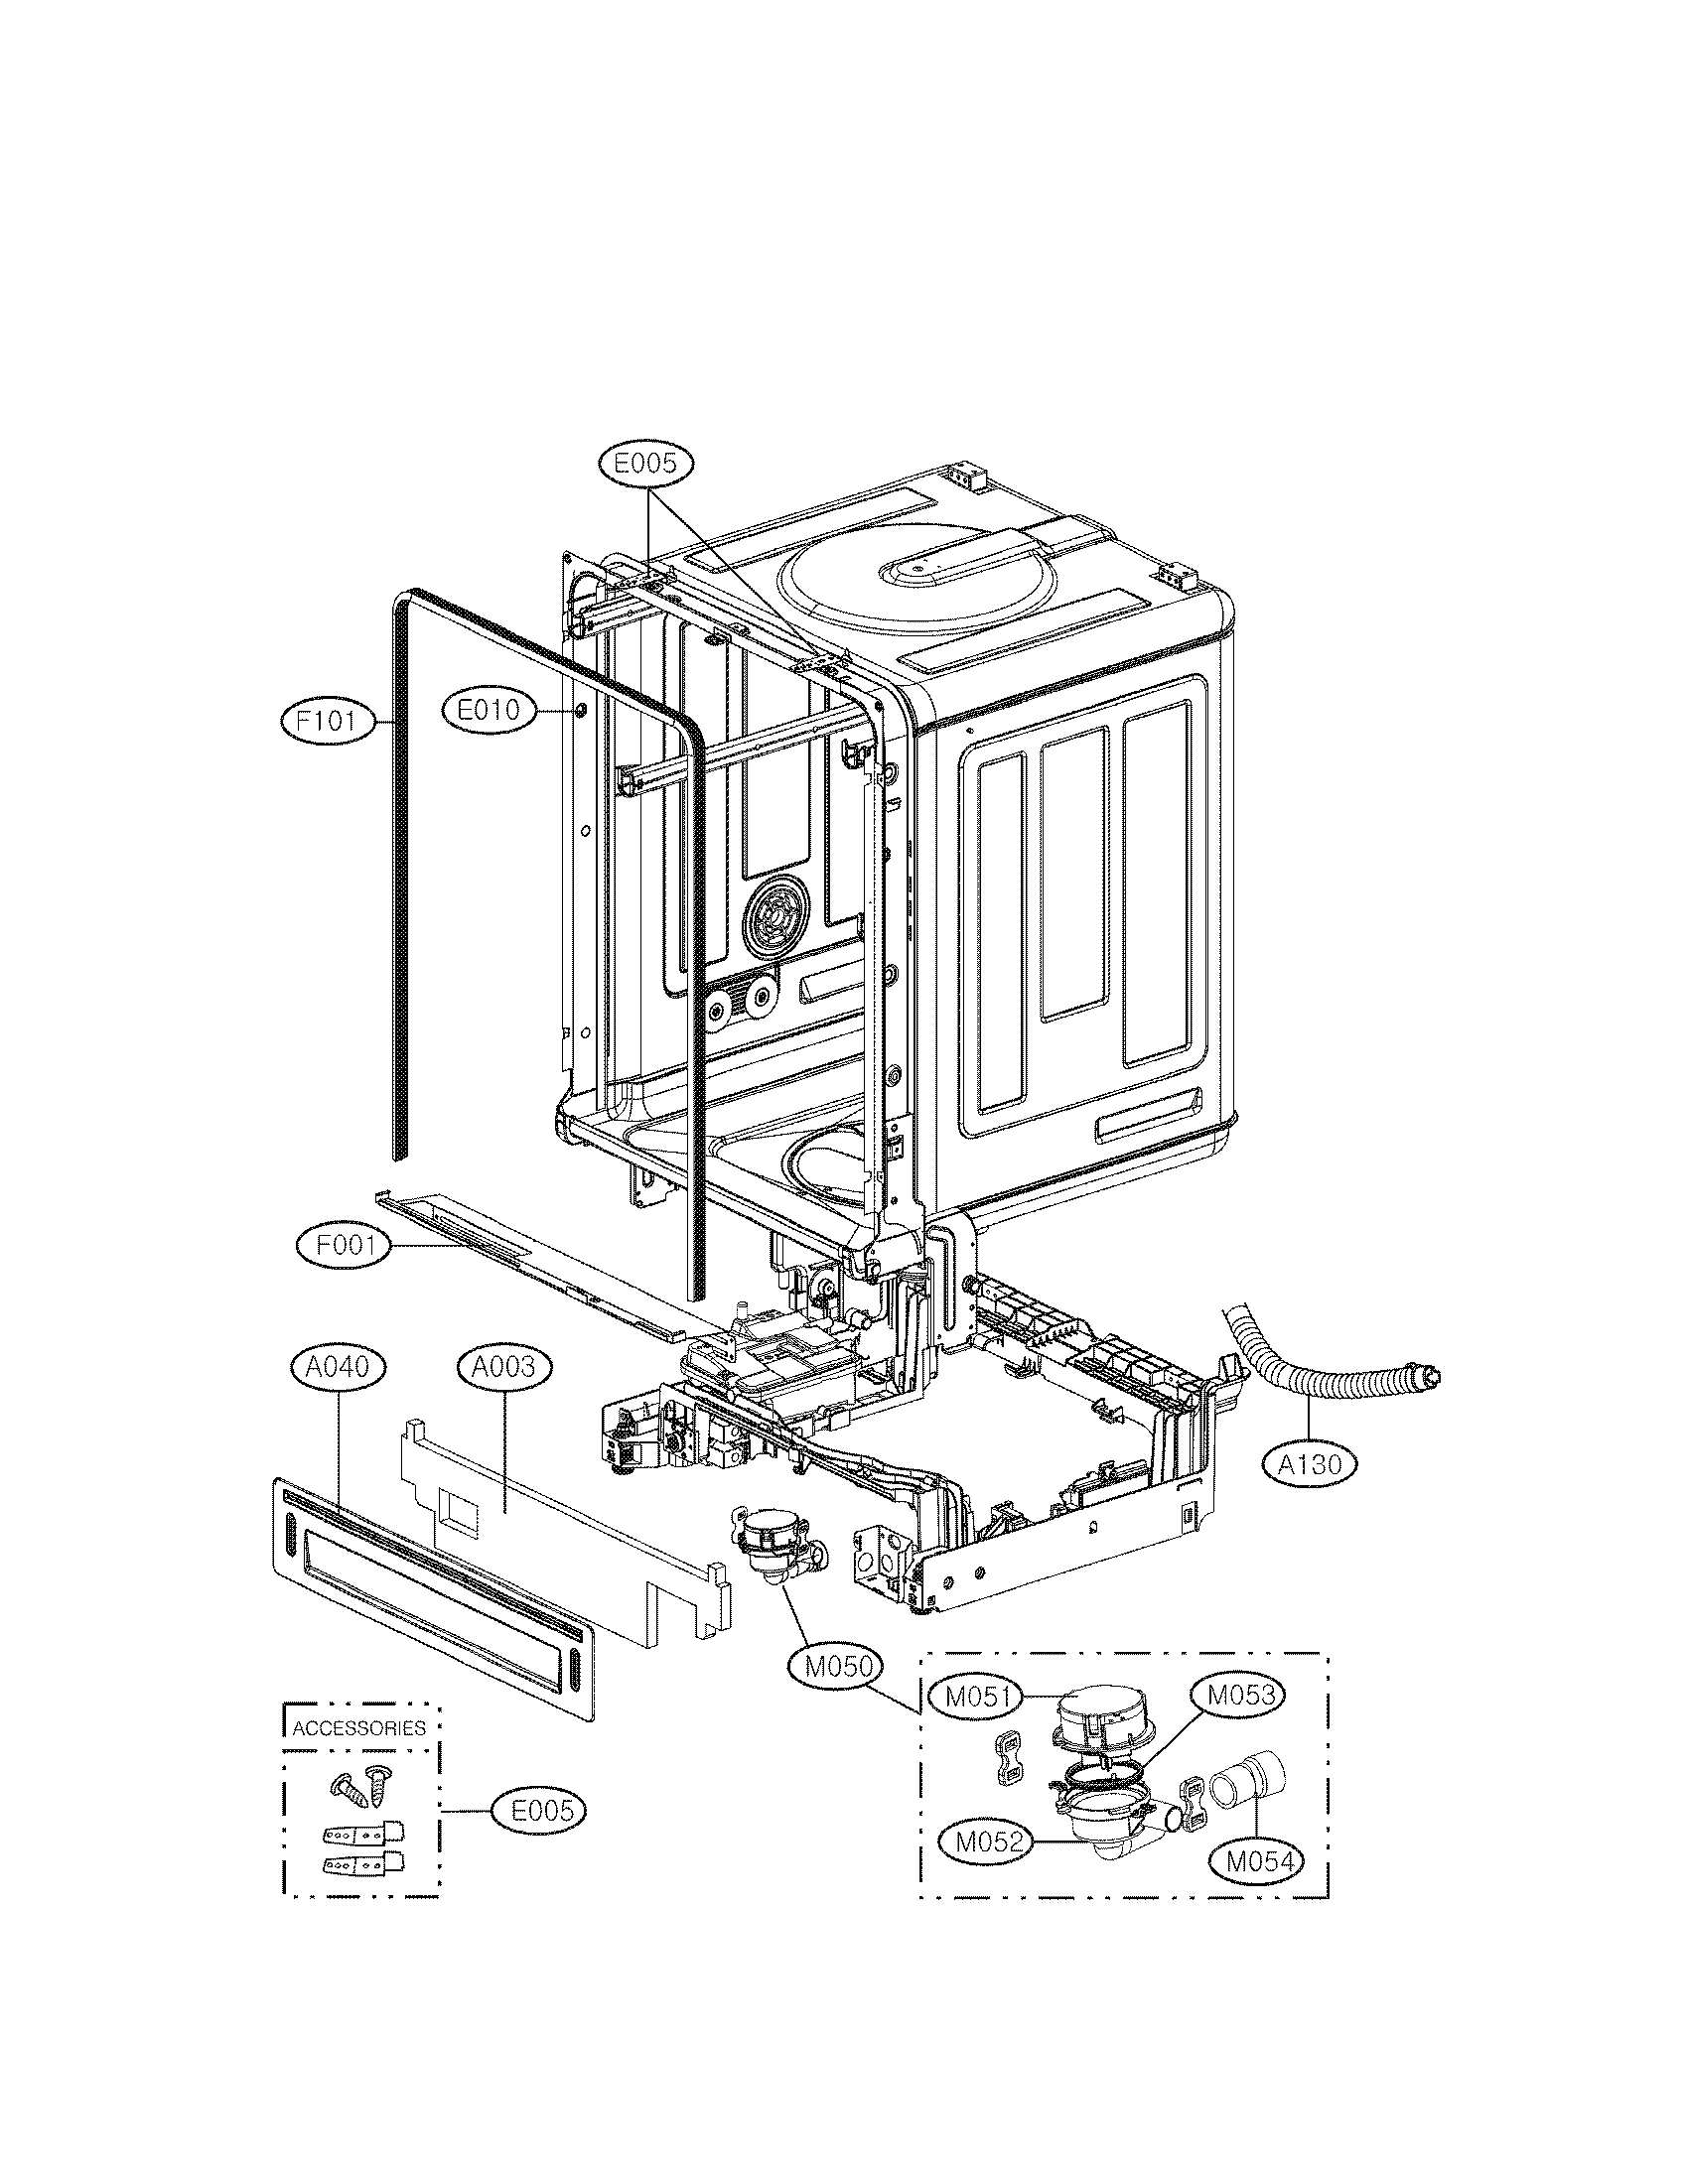 Lg Ldf St Dishwasher Installation Hardware Kit